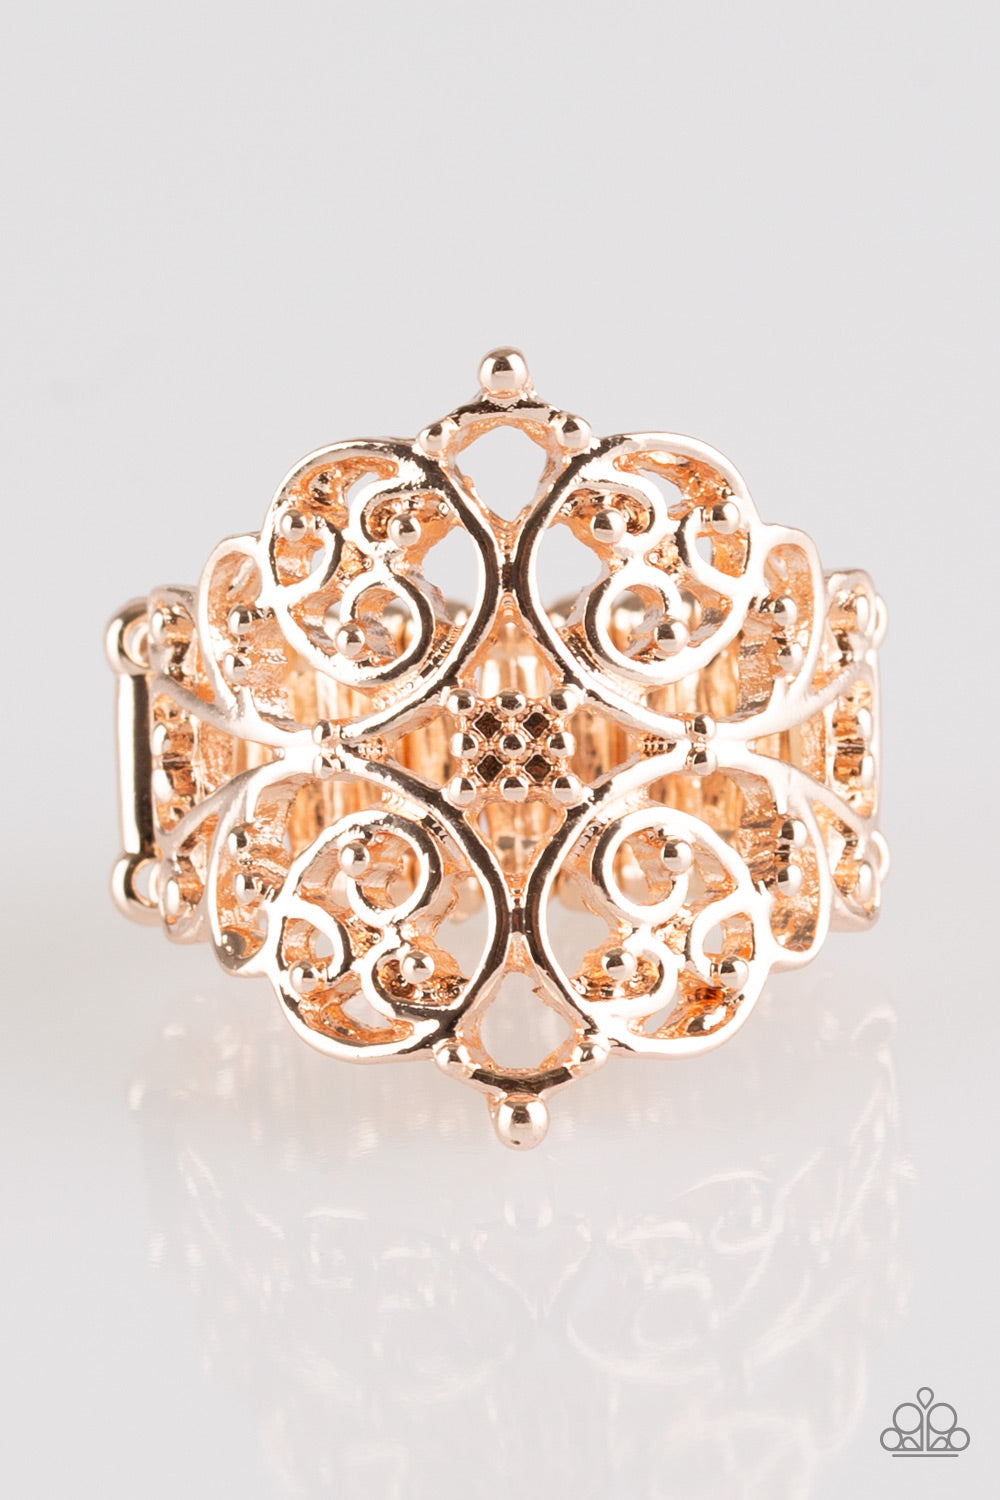 five-dollar-jewelry-victorian-valor-rose-gold-paparazzi-accessories